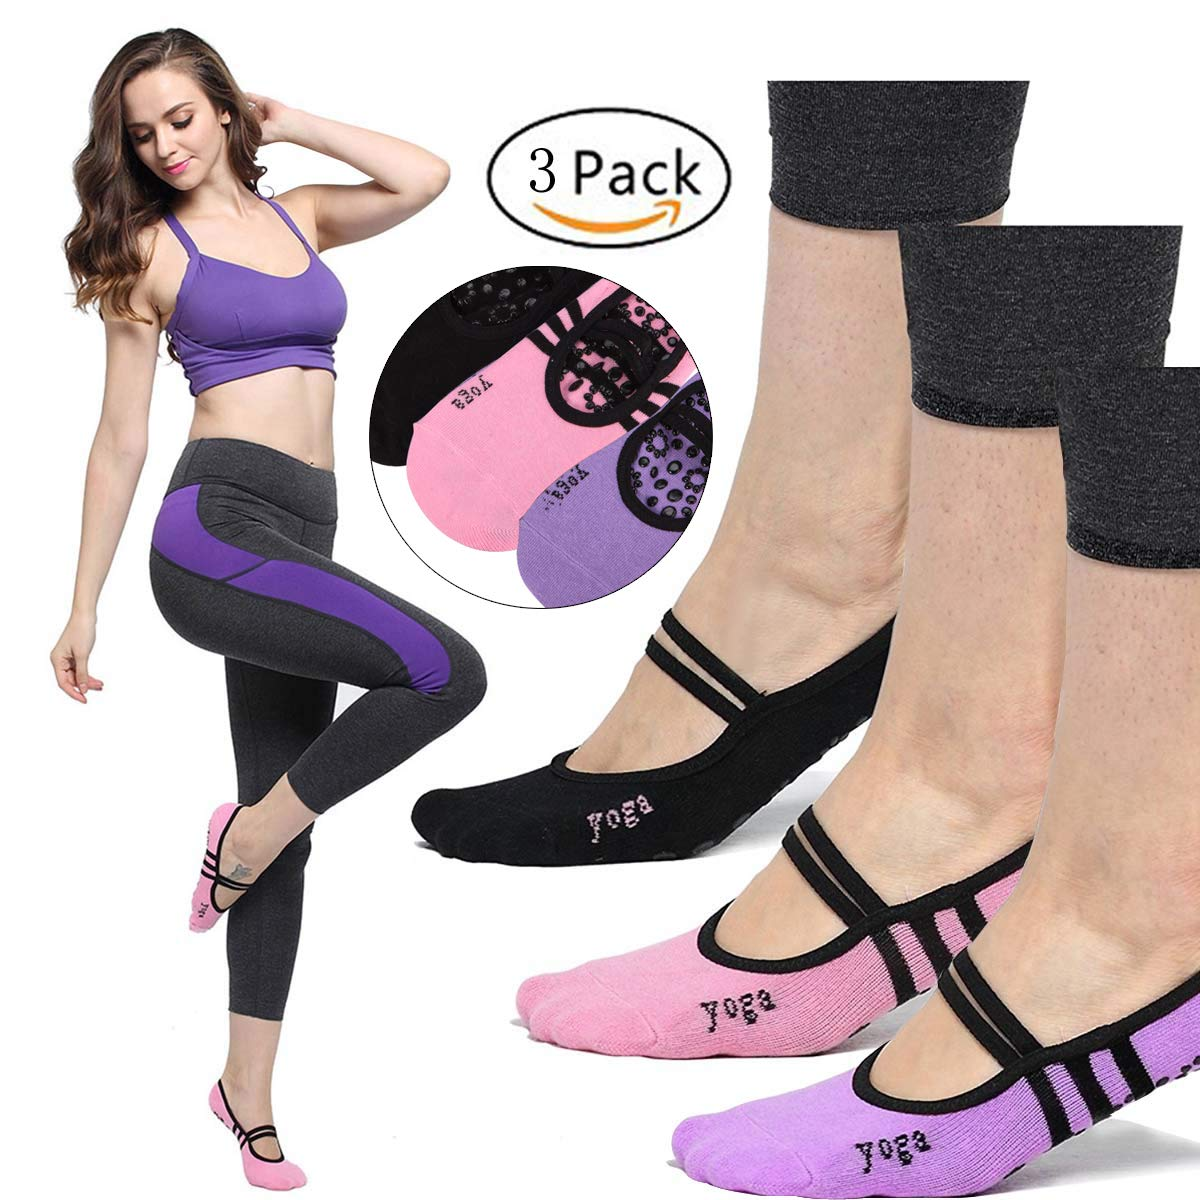 e04a0ab75d Imported 100% Cotton ✅USE THEM IN ALL WALKS OF LIFE - Run,jump, play, and  do anything in great comfort with LIBRUONE Socks. Great for Yoga practice,  ...